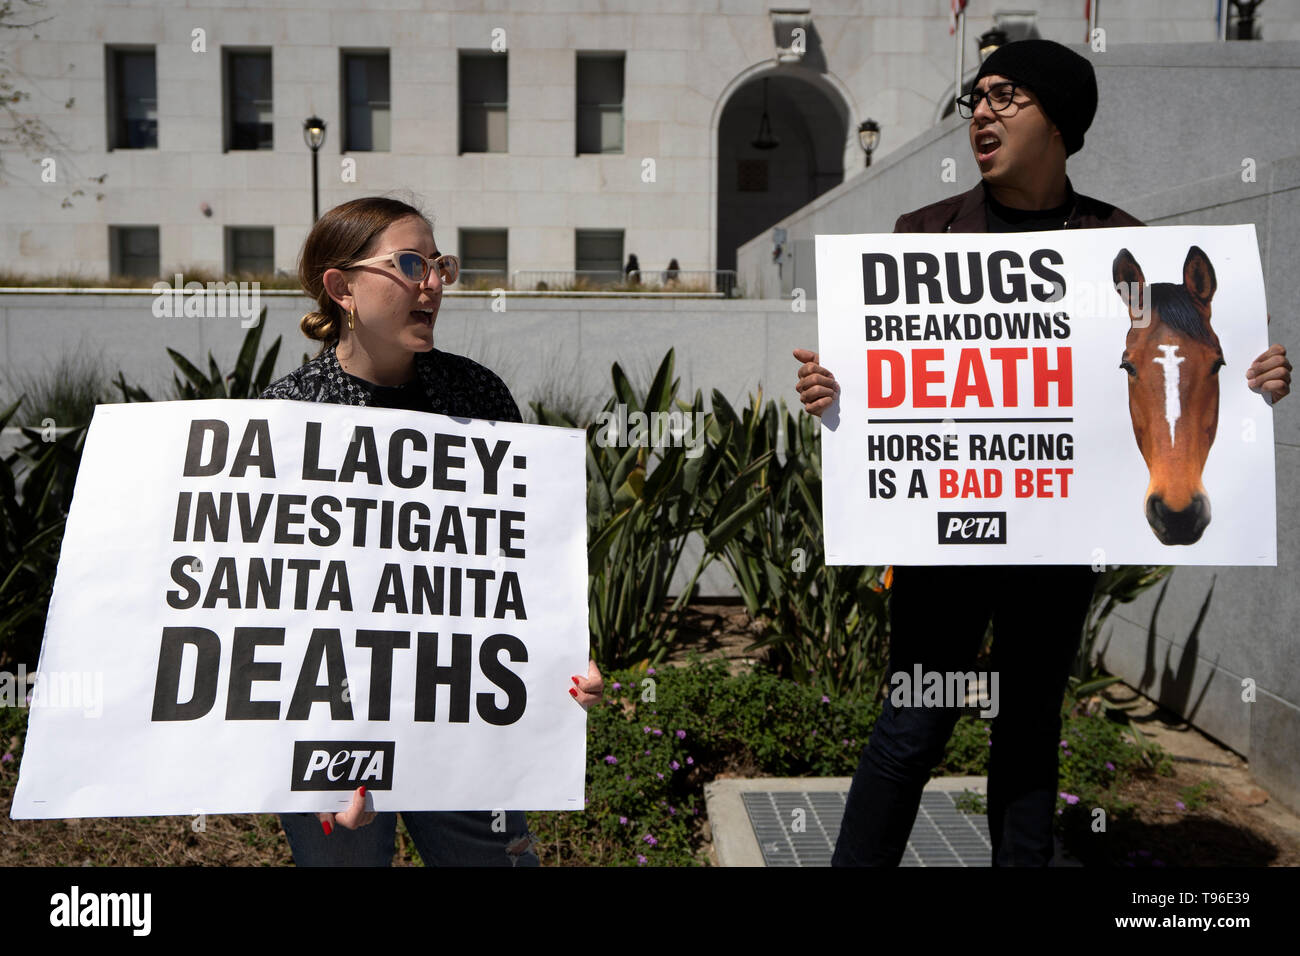 Demonstrators are seen holding placards during the protest. Animal right activists held a PETA protest against the death of 22 horses at the Santa Anita Racetrack. The protesters holding placards also called on the Los Angeles District Attorney to open a criminal investigation and suspend racing while investigating the cause of the death. - Stock Image